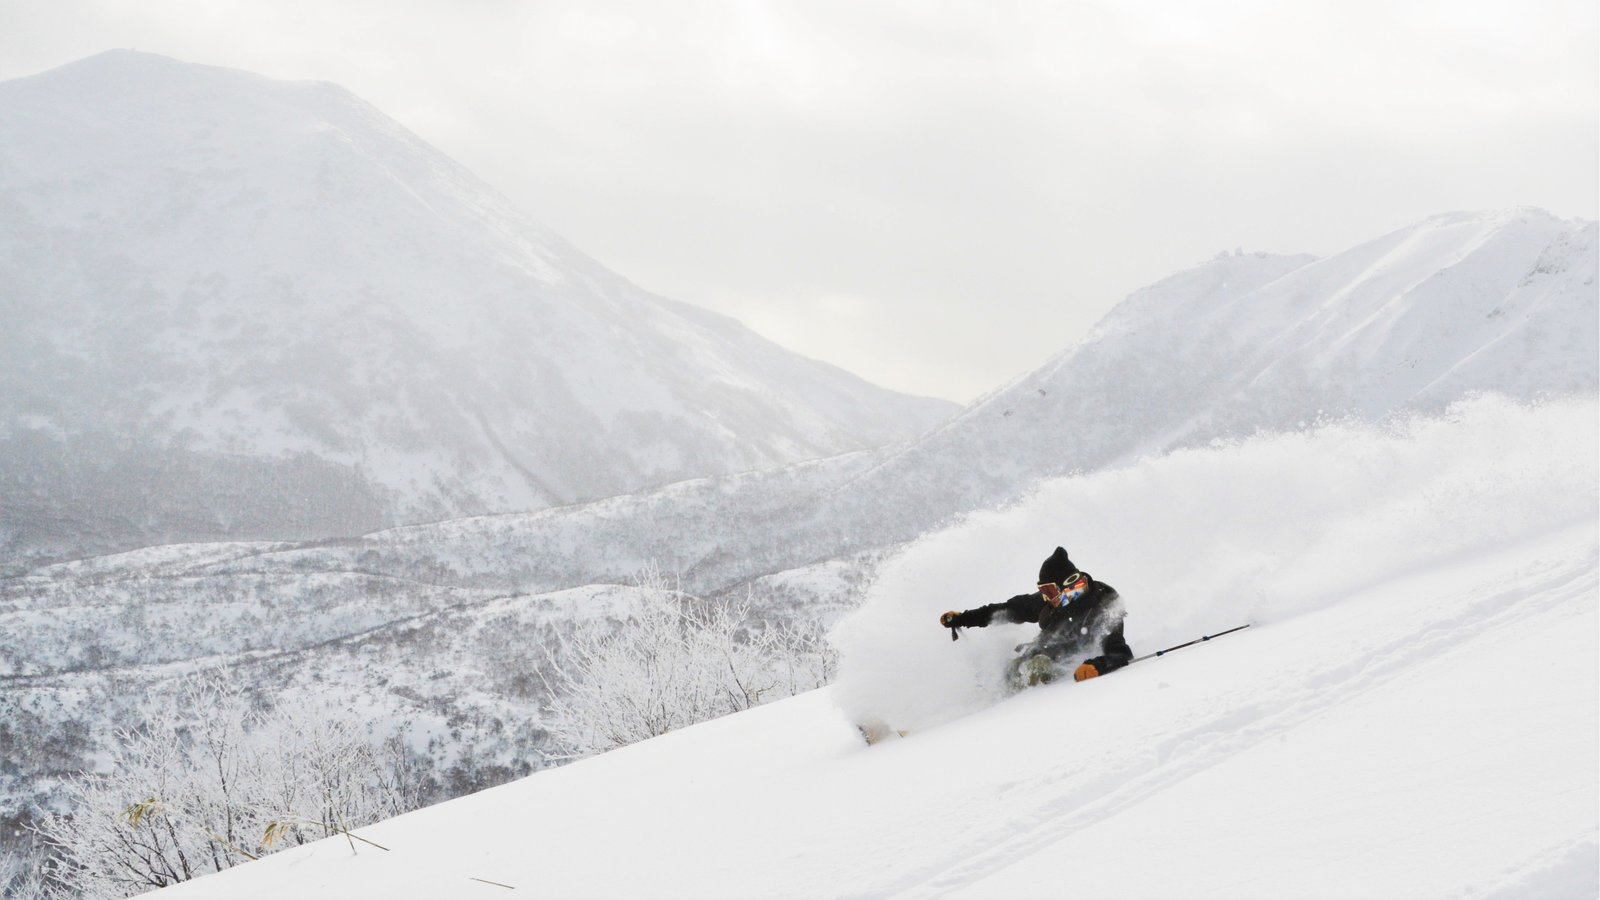 Skier shredding famous japanese Powder with Weiss Cat Ski program